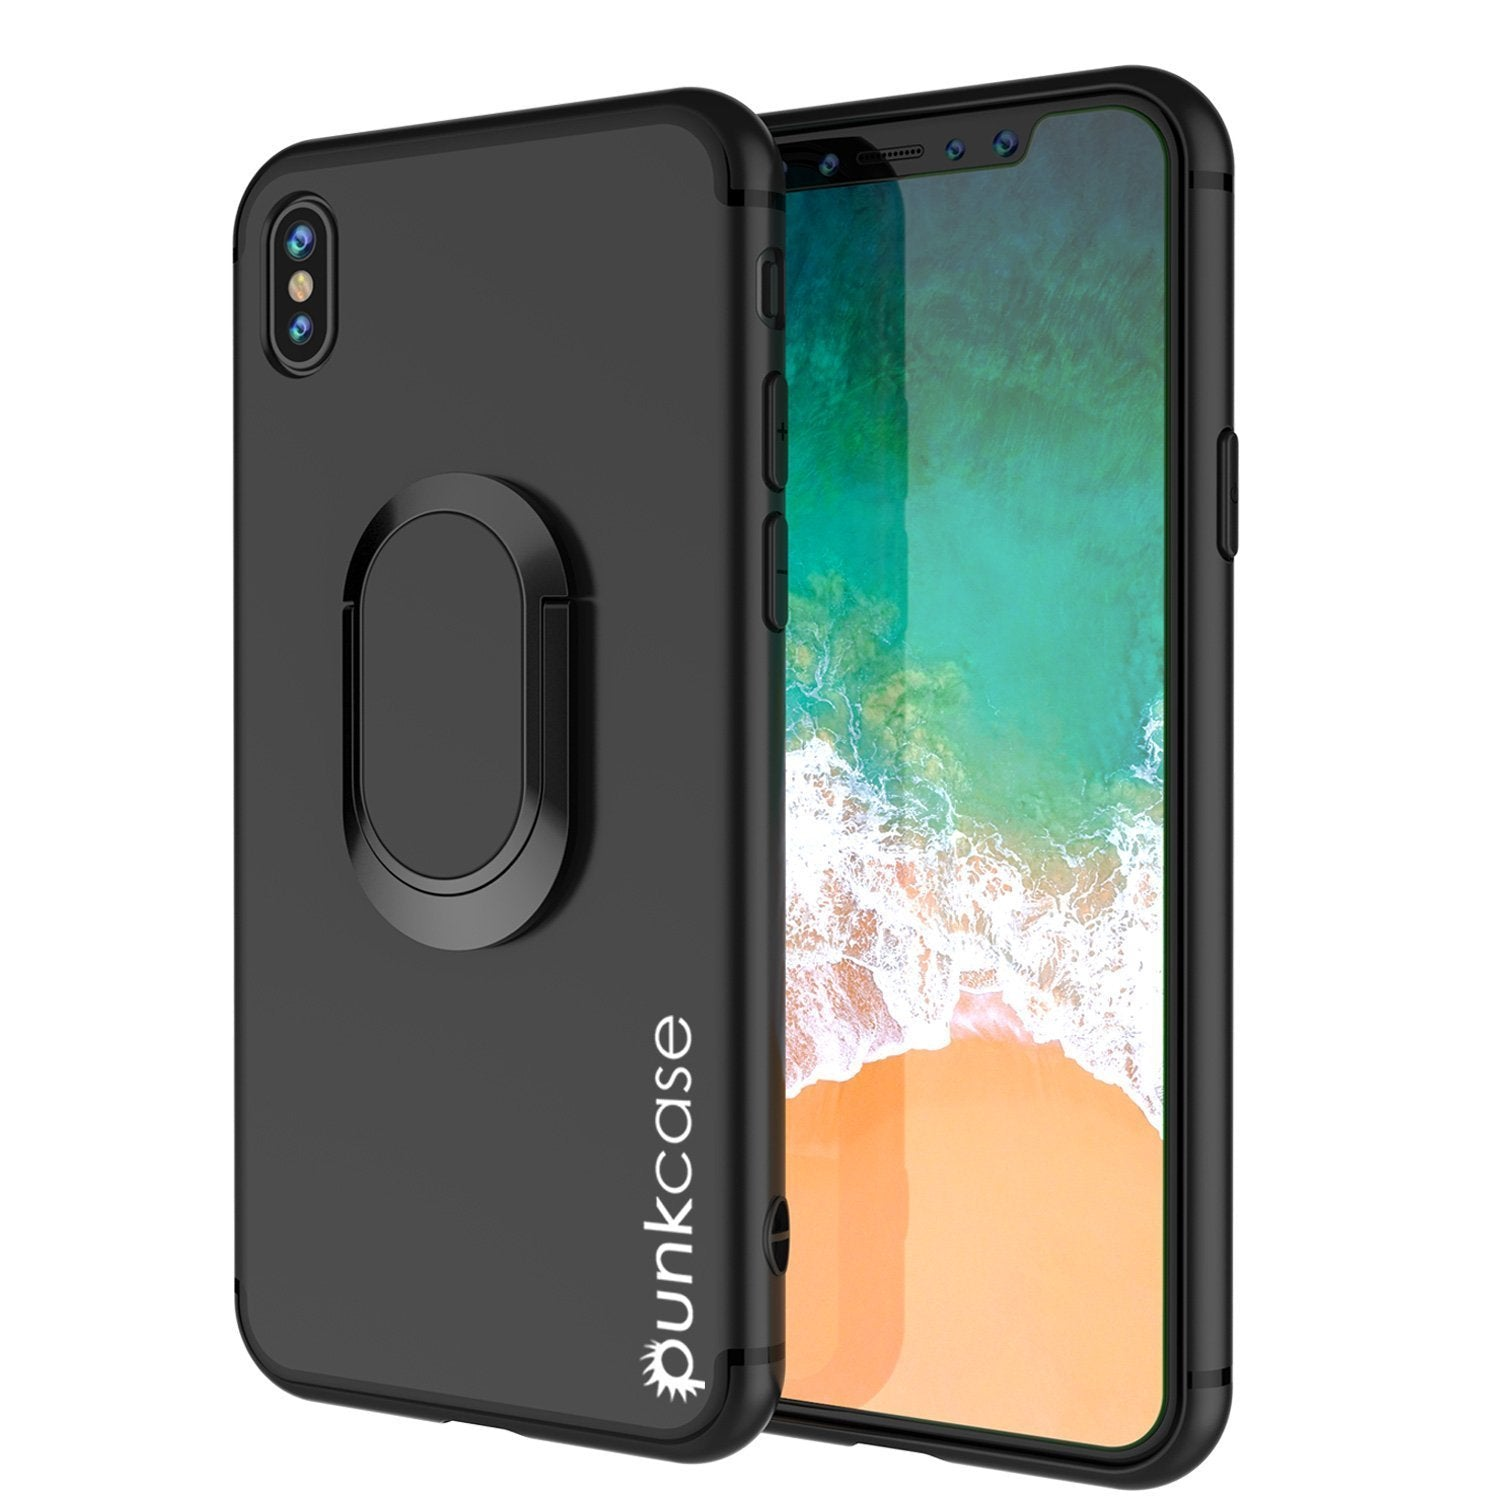 iPhone X Case, Punkcase Magnetix Protective TPU Cover W/ Kickstand, Tempered Glass Screen Protector [Black]